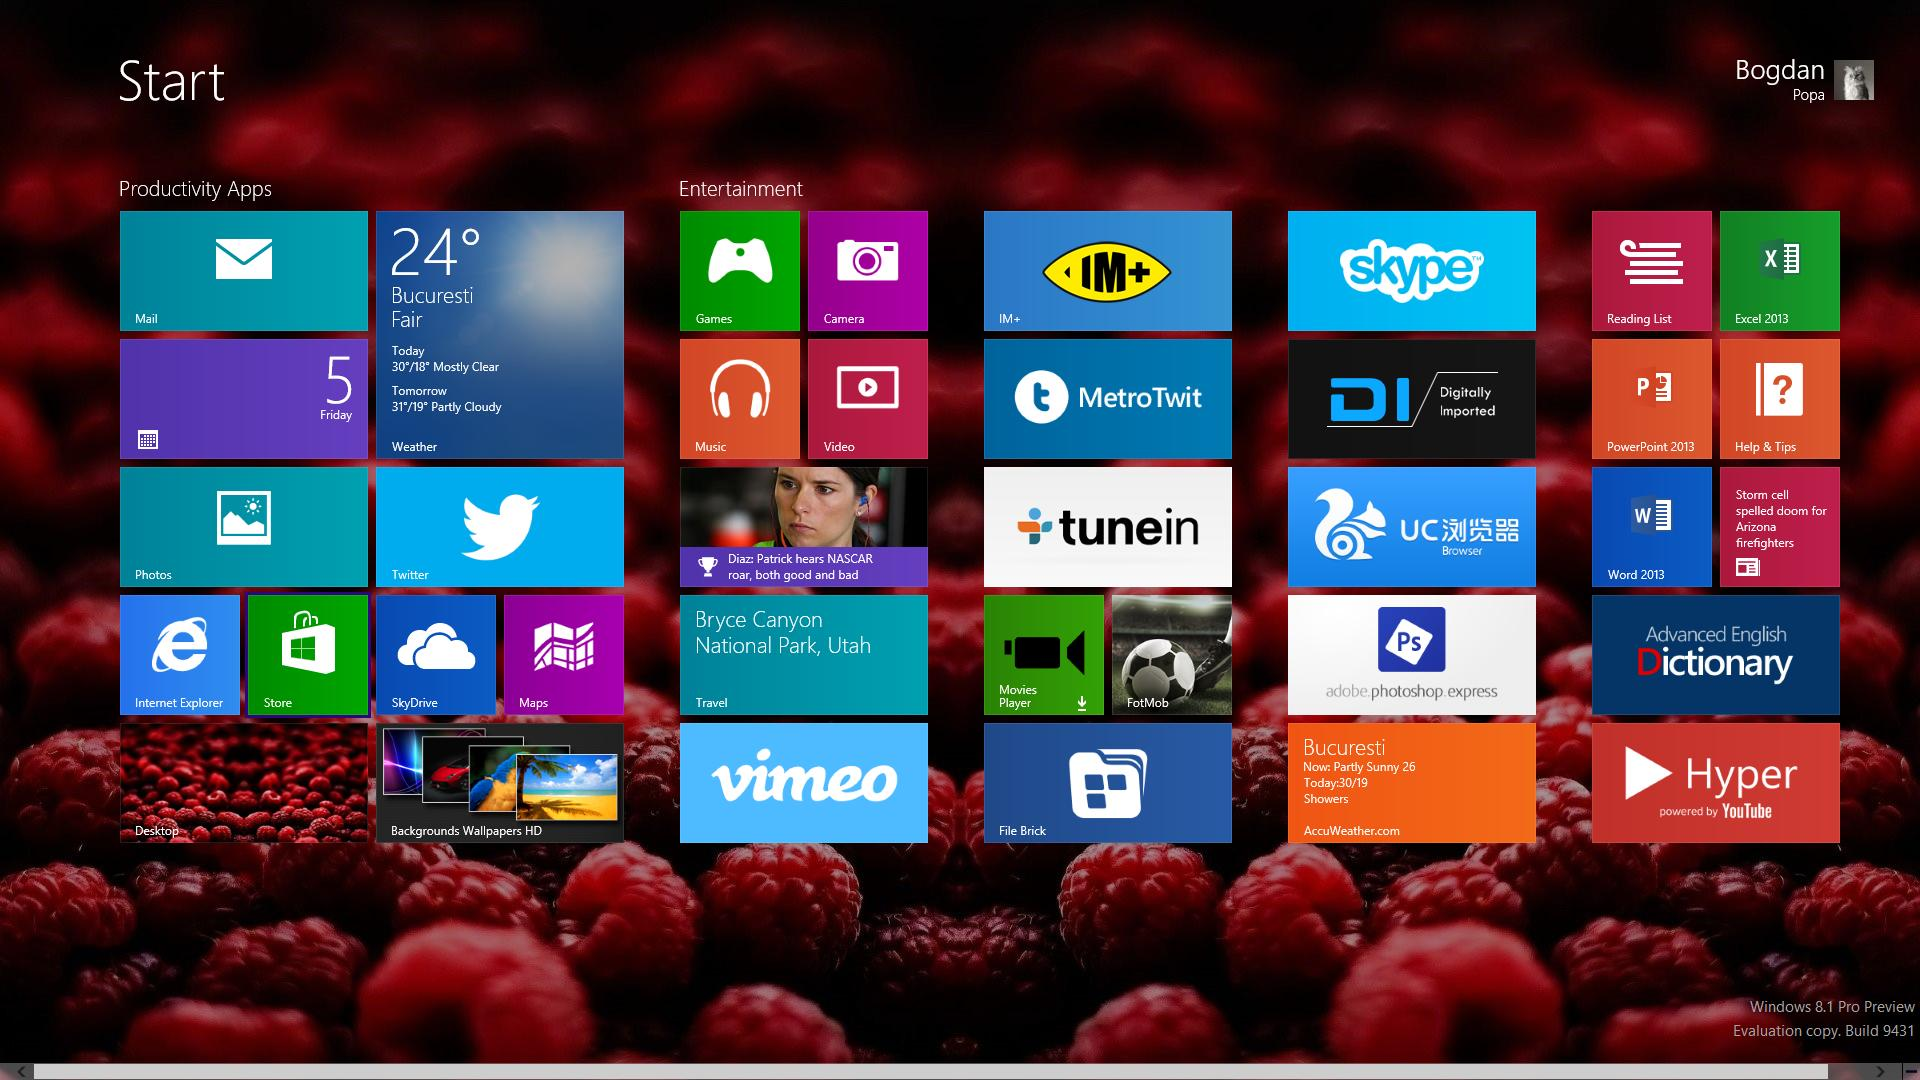 Start screen wallpaper dimming is turned on by default in Windows 81 1920x1080